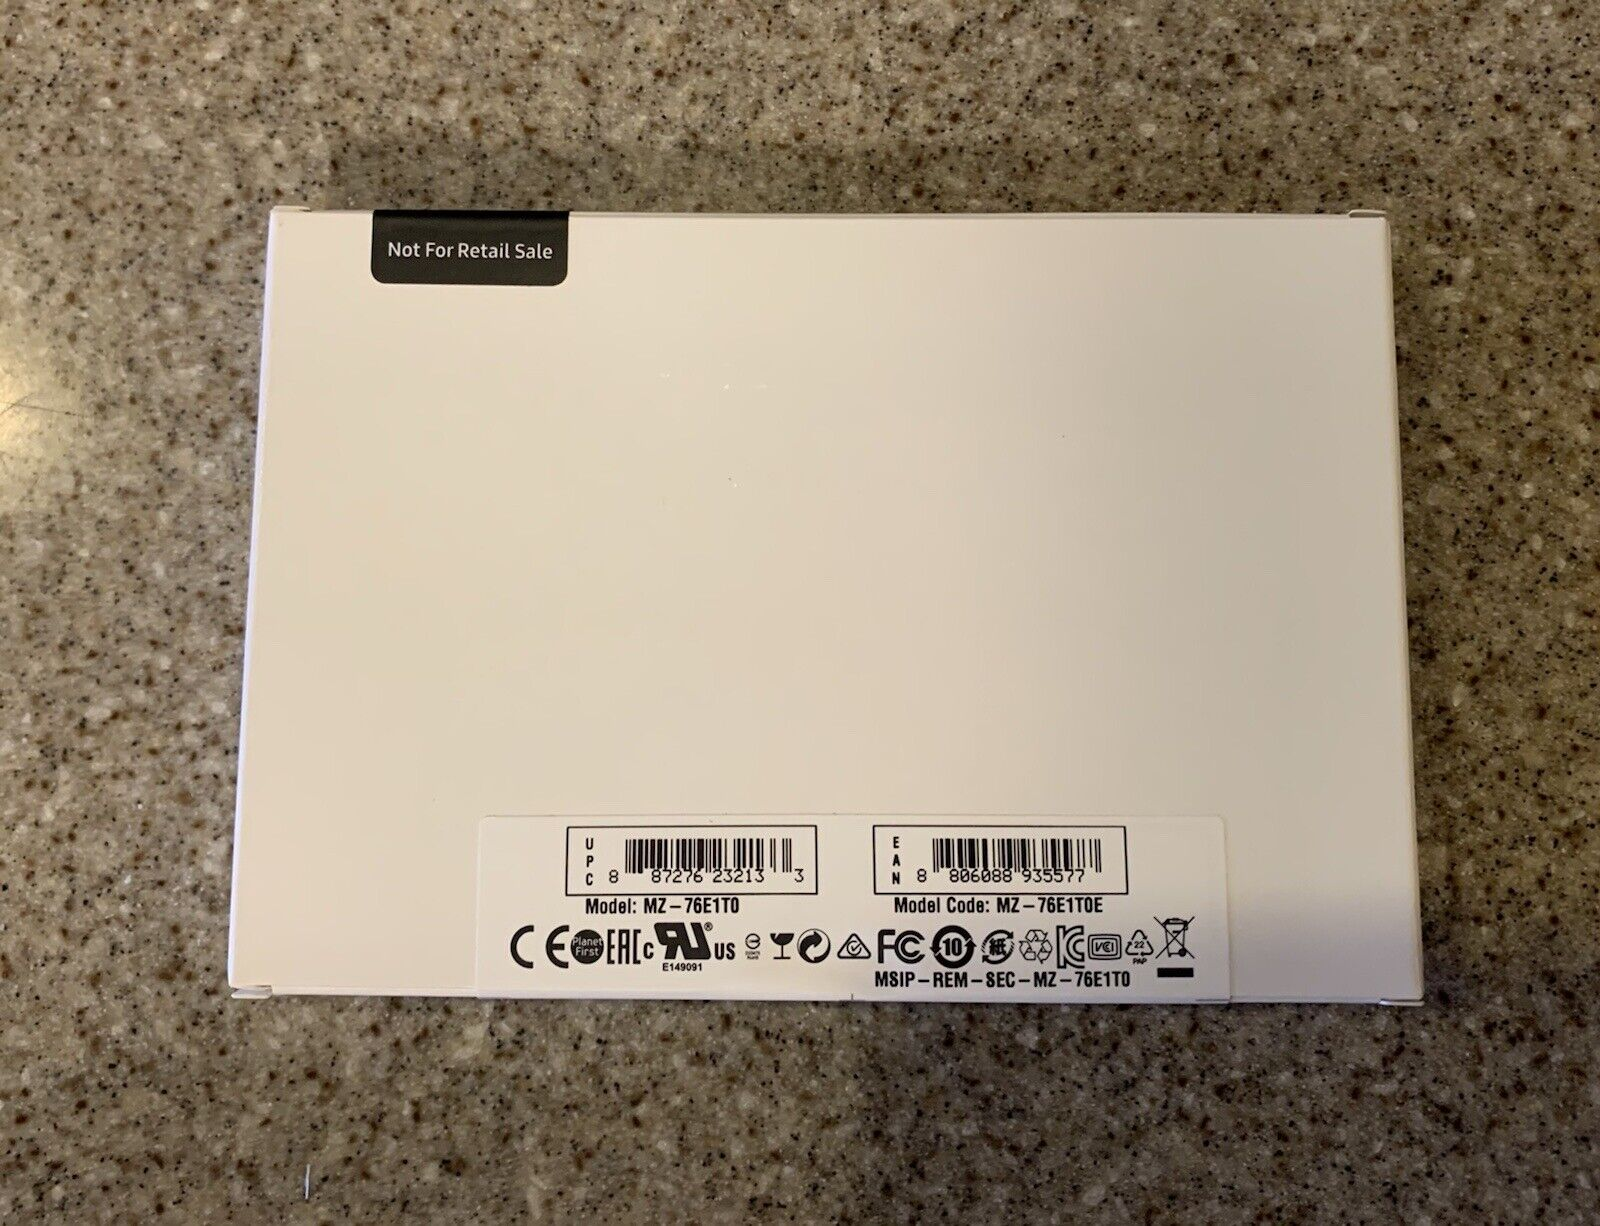 Samsung 860 EVO Series 1TB, 2.5 Inch (MZ76E1T0E) Solid State Drive (Sealed). Buy it now for 100.00